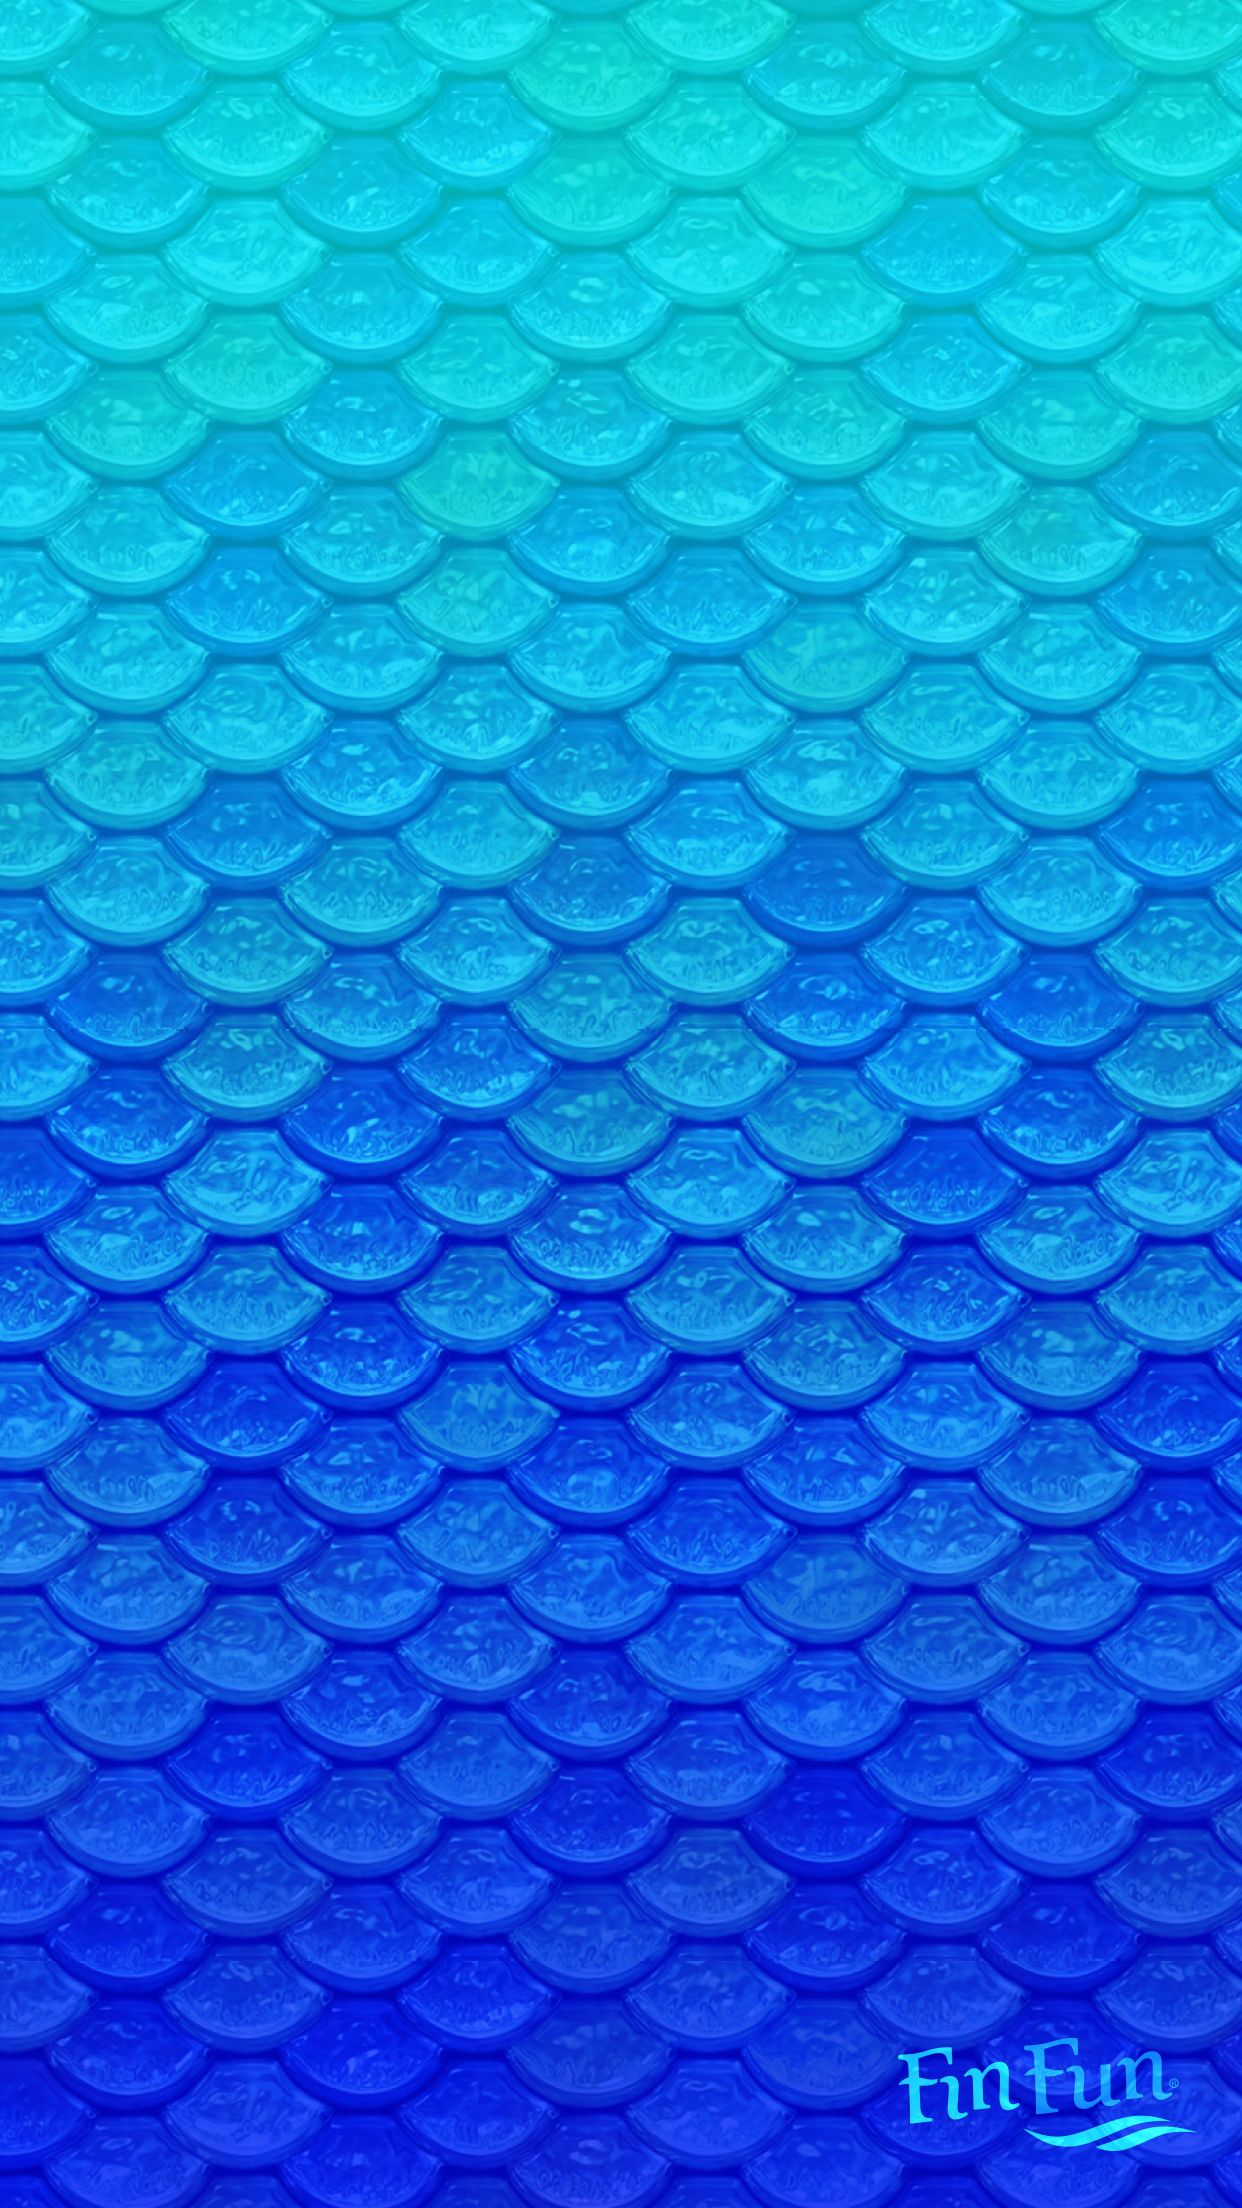 Wallpaper download in phone - Mermaid Scale Wallpaper For Your Phone Or Tablet Download Similar Wallpapers At Finfriends Com